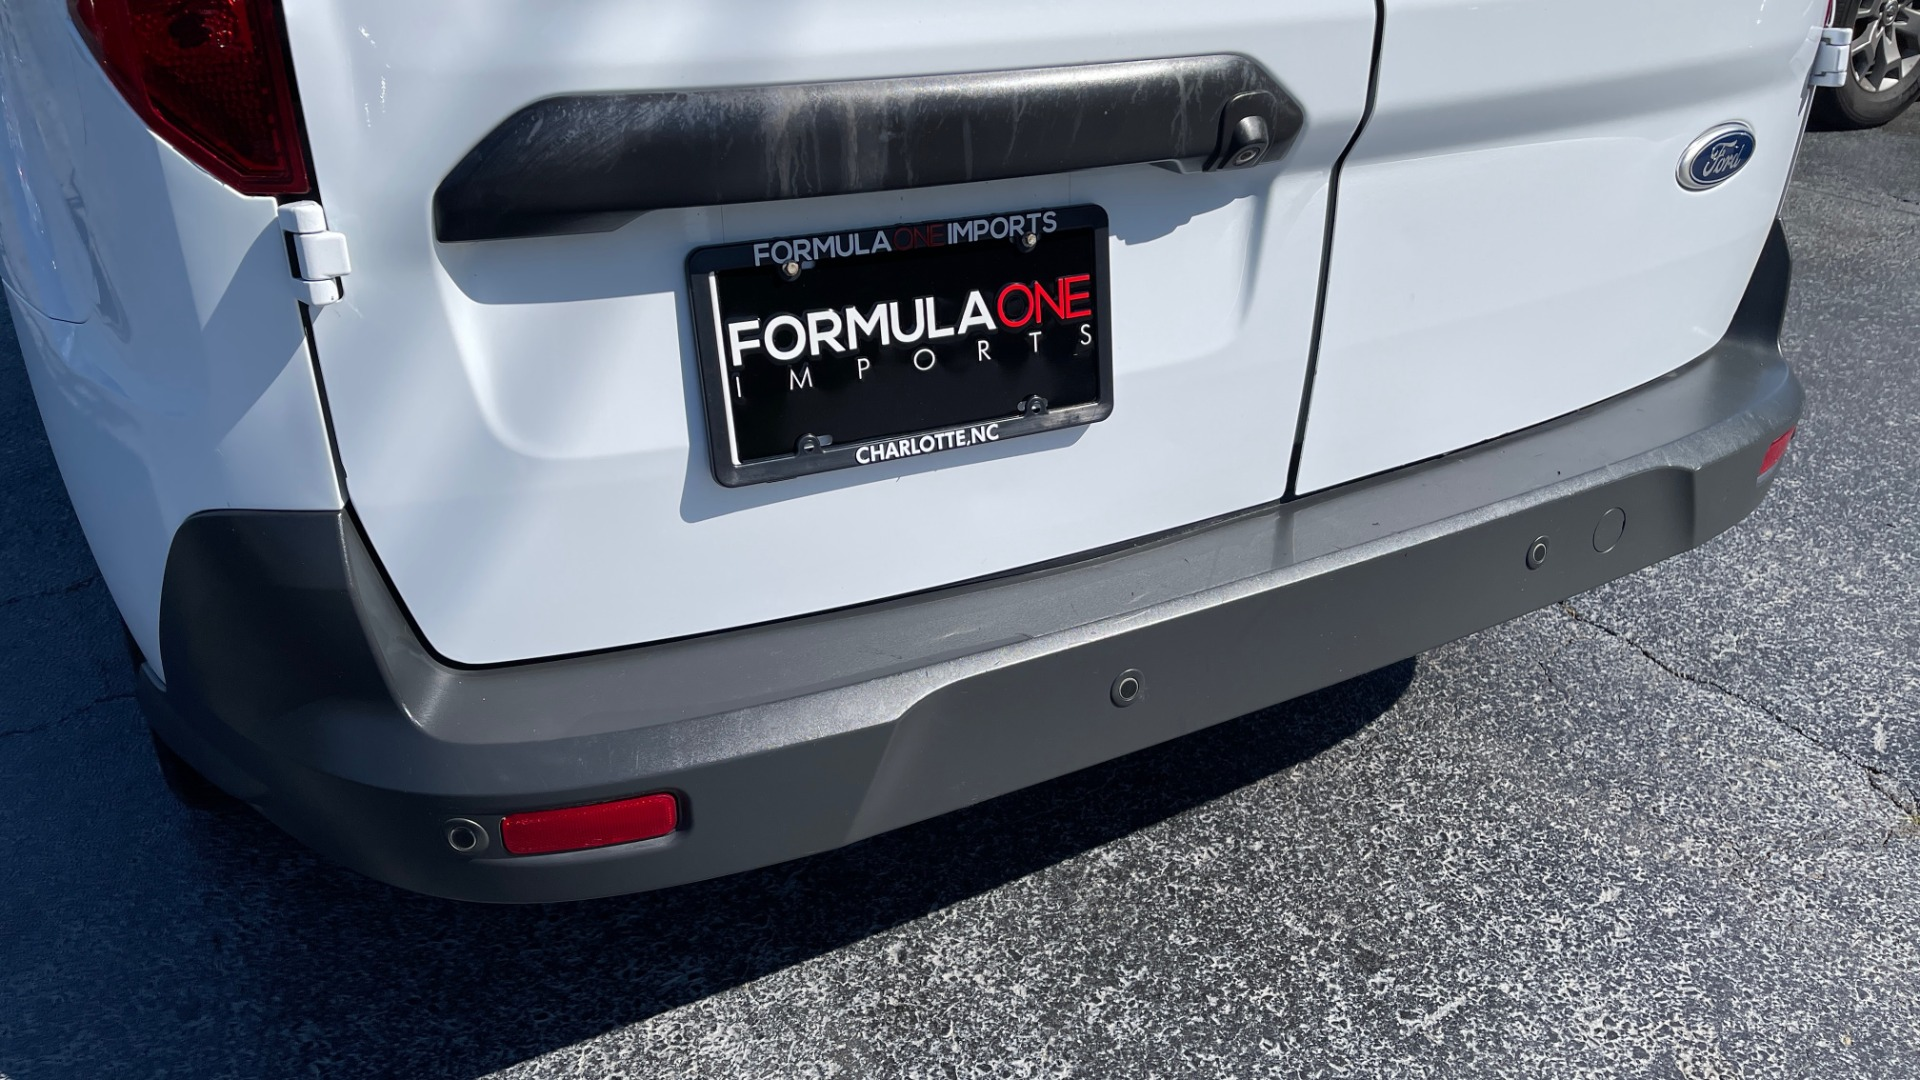 Used 2015 Ford TRANSIT CONNECT XLT CARGO VAN LWB / 2.5L 4-CYL / 6-SPD AUTO / ROOF RACK for sale $10,500 at Formula Imports in Charlotte NC 28227 13